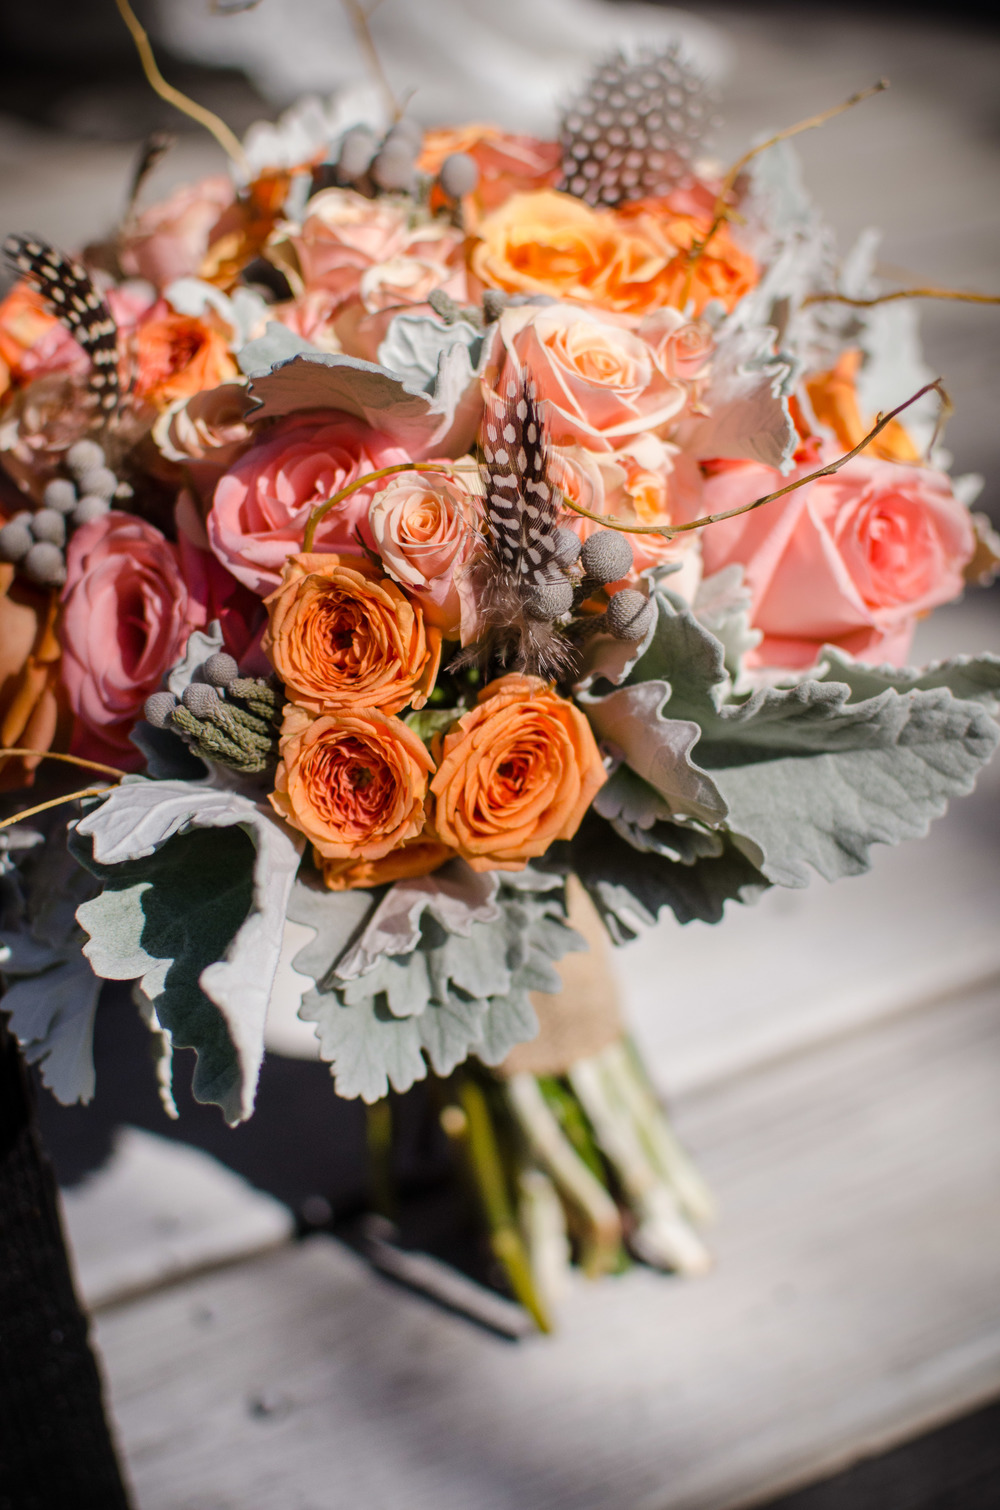 Assorted Colors Bouquet (Photo Credit: Higher Focus Studios)